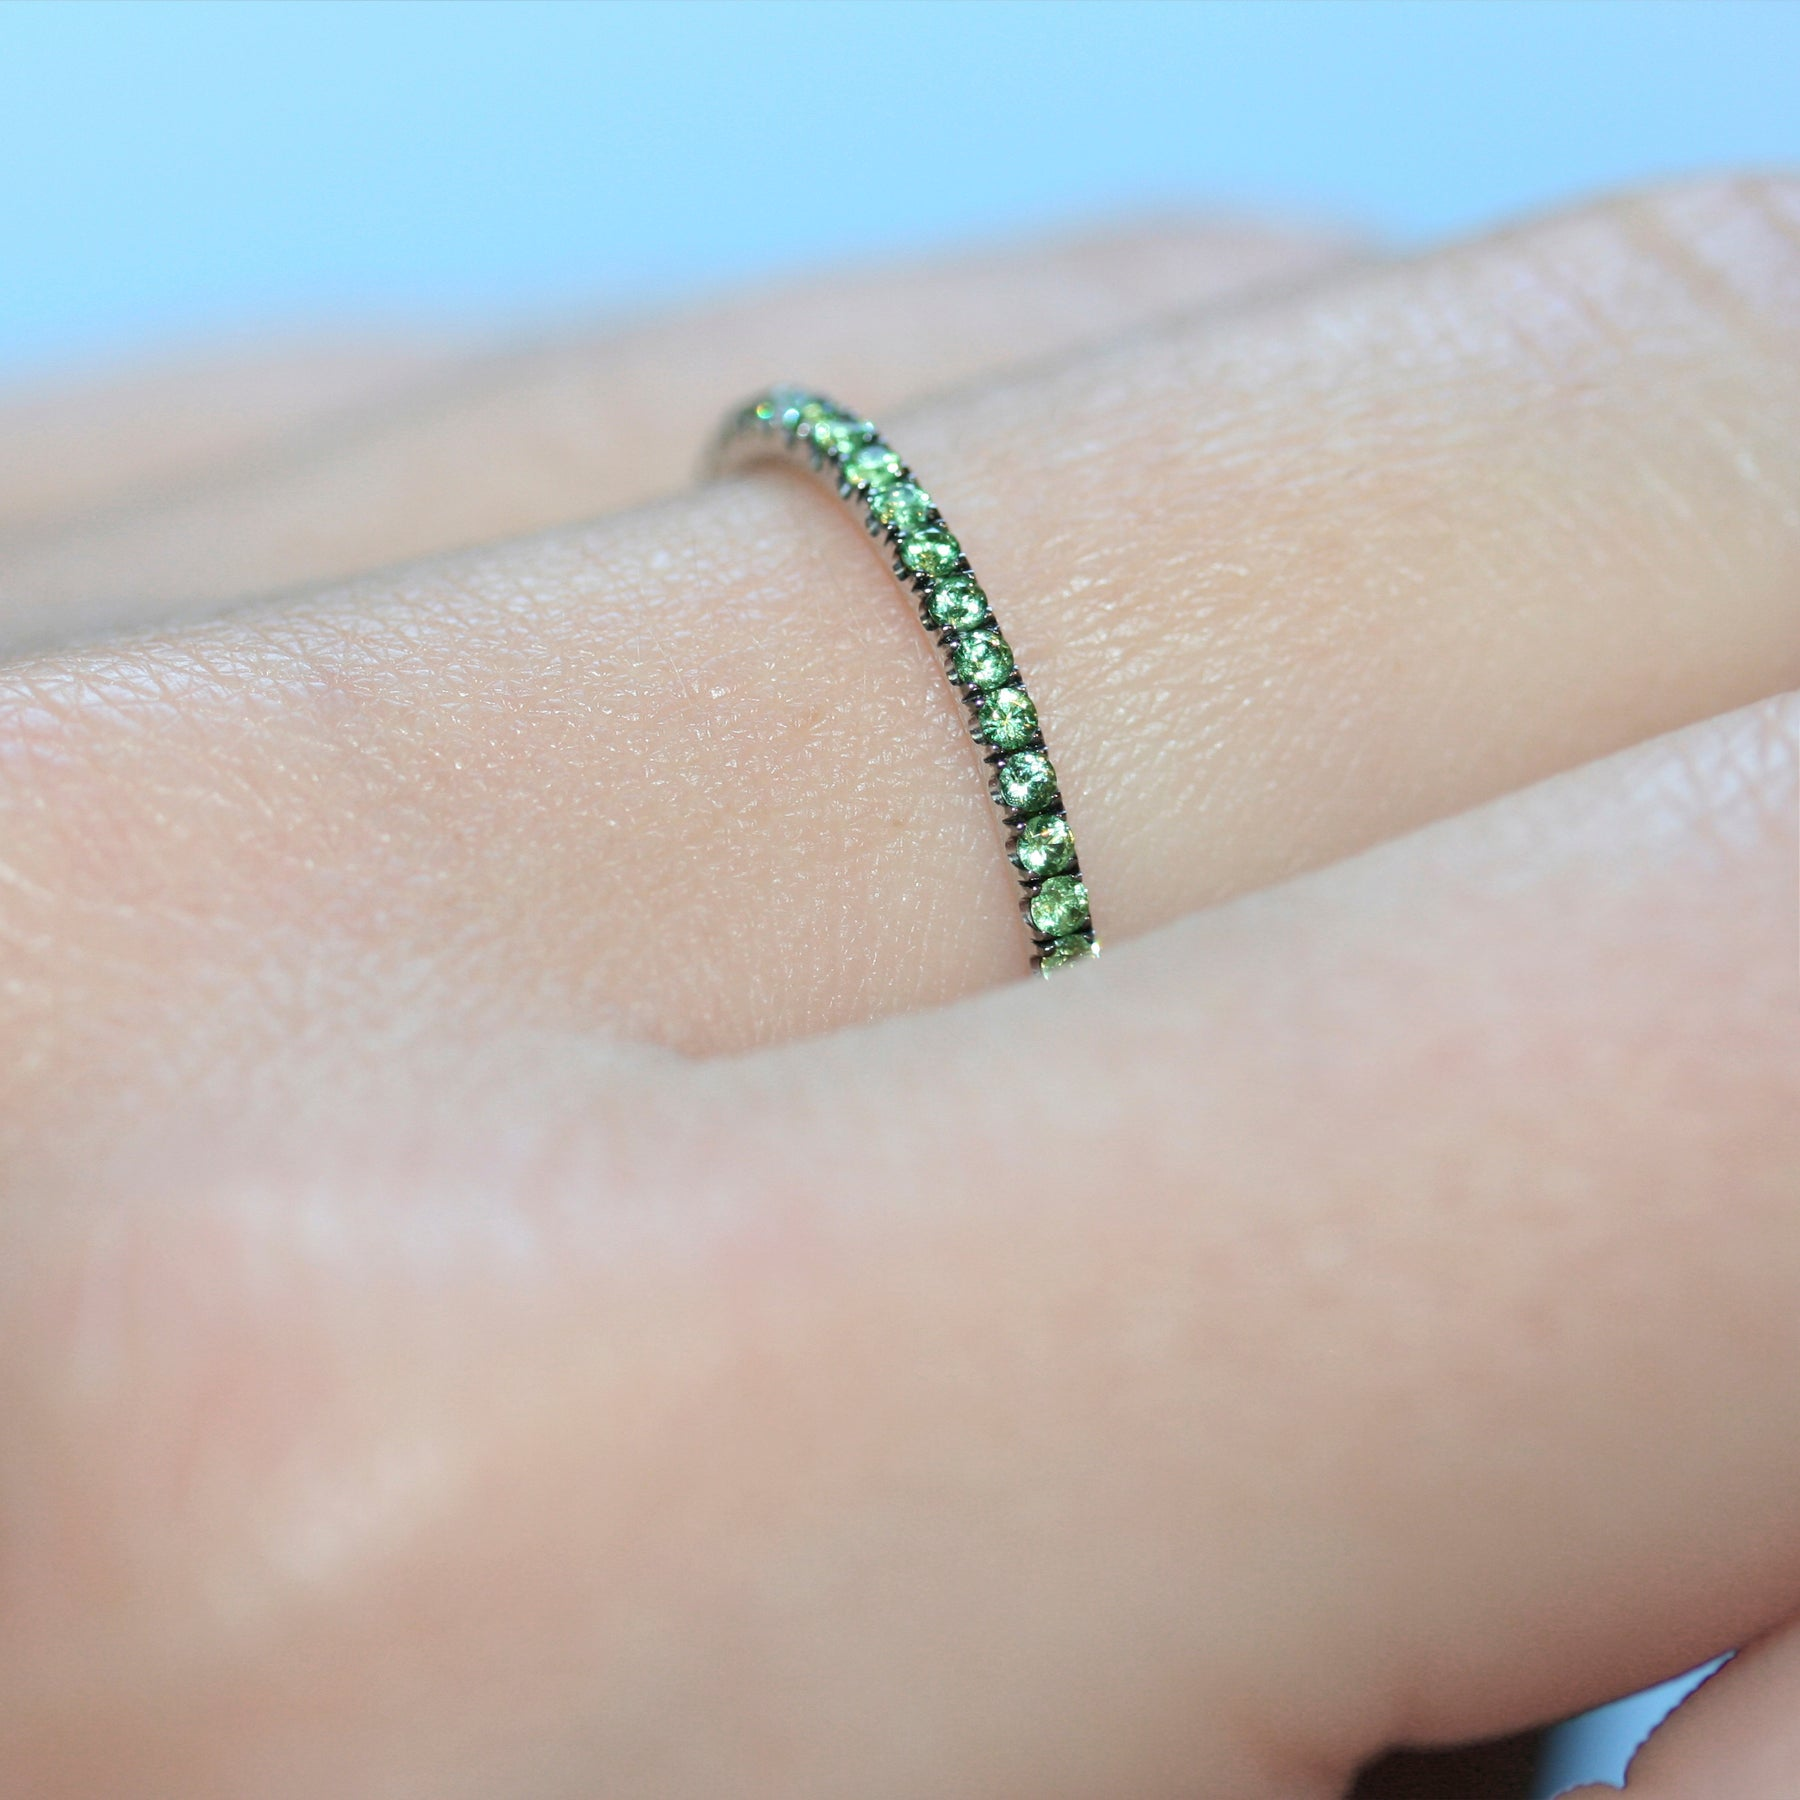 Closer shot of green garnet ring in 18ct white gold on a hand.